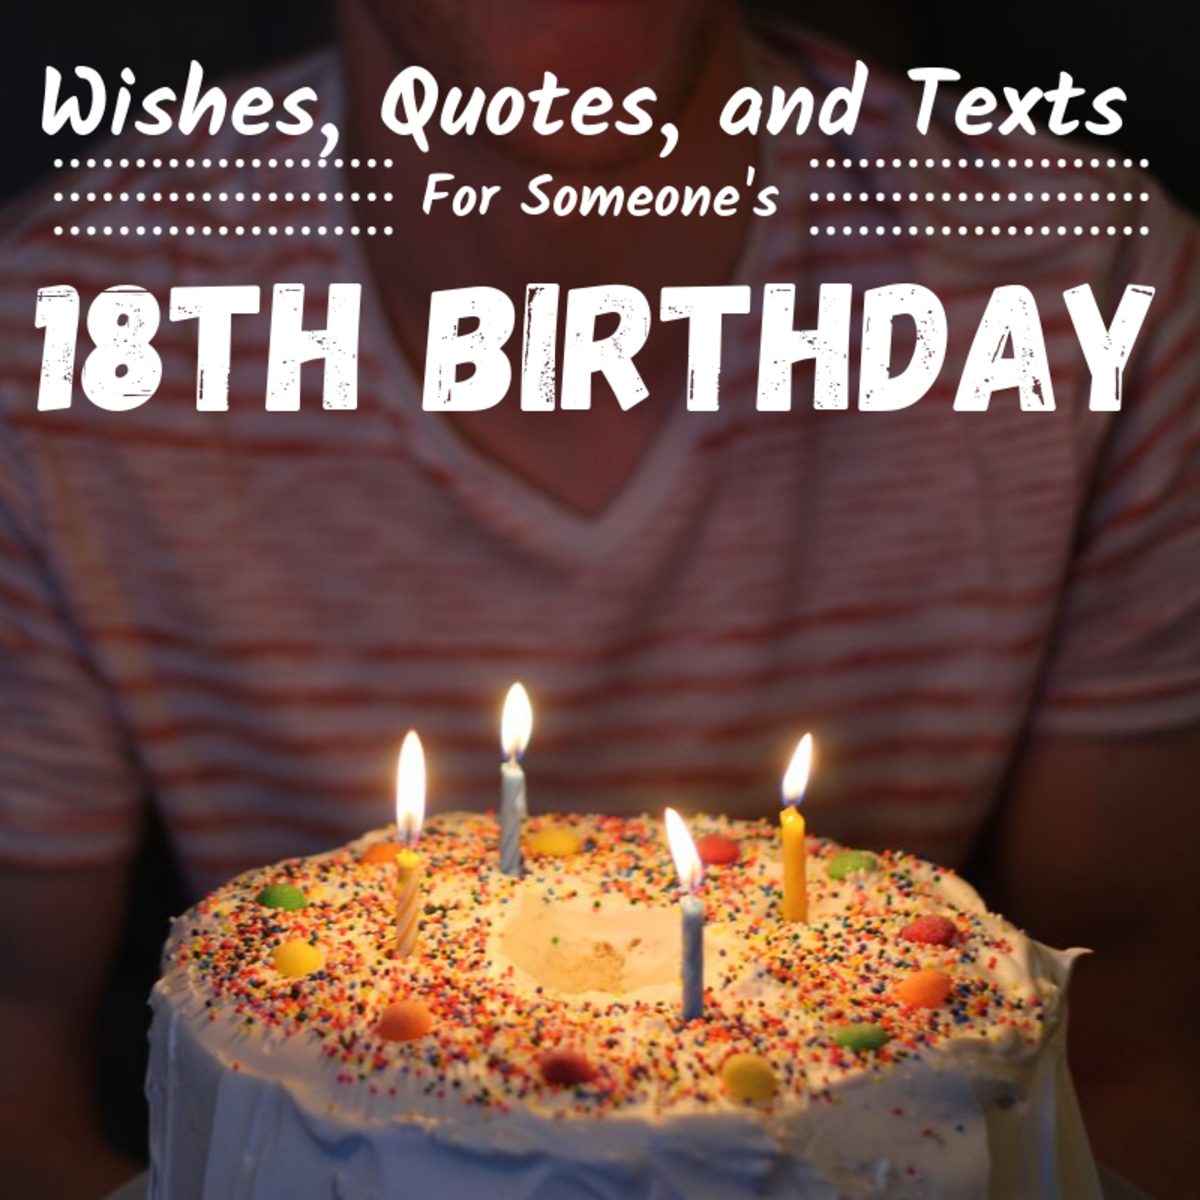 18 is a major milestone, so be sure to find the right words to wish the new adult in your life well on their big day.